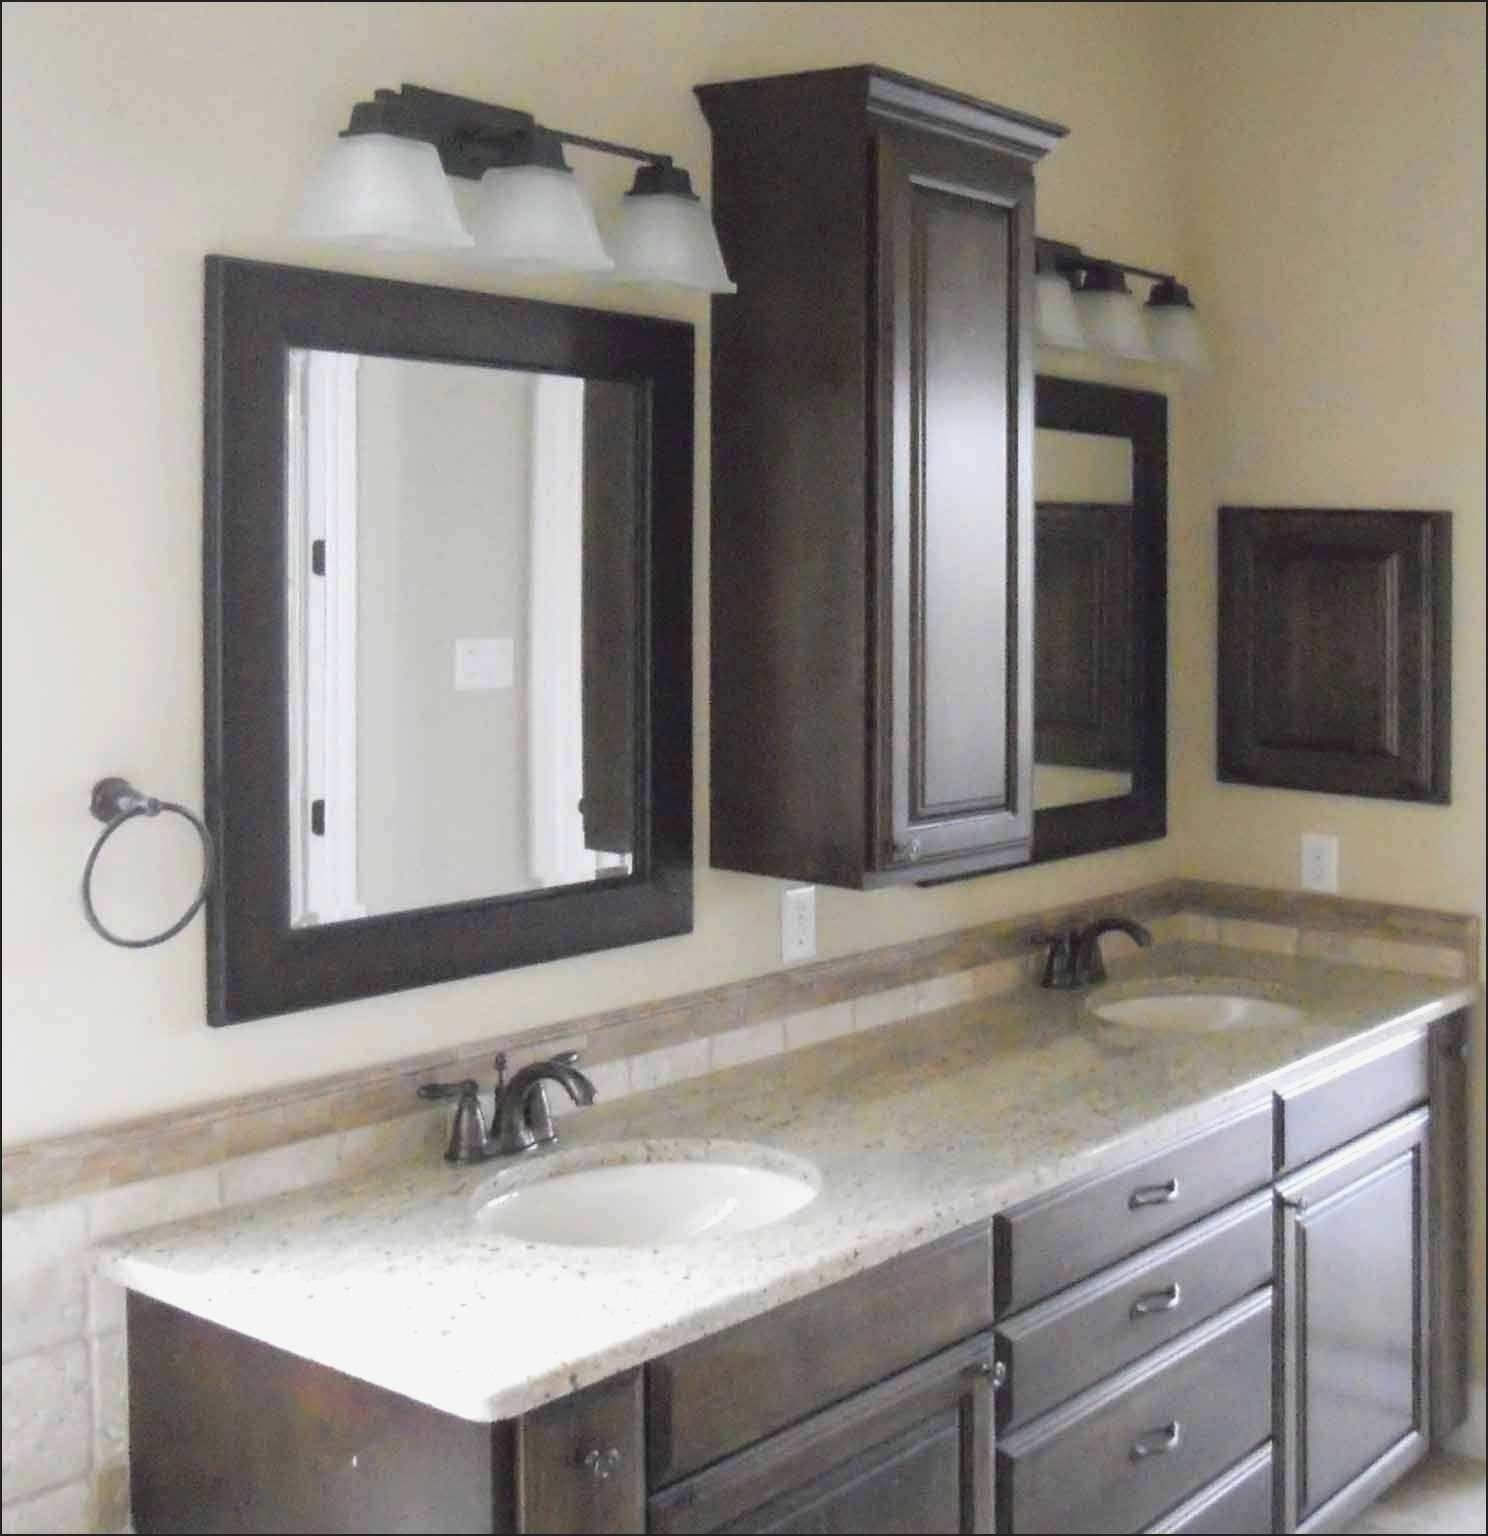 Lovely Bathroom Countertop Storage Cabinets Room Lounge Gallery Https Ift Tt 2qgr3cm Home Depot Bathroom Bathroom Cabinets Diy Countertop Storage